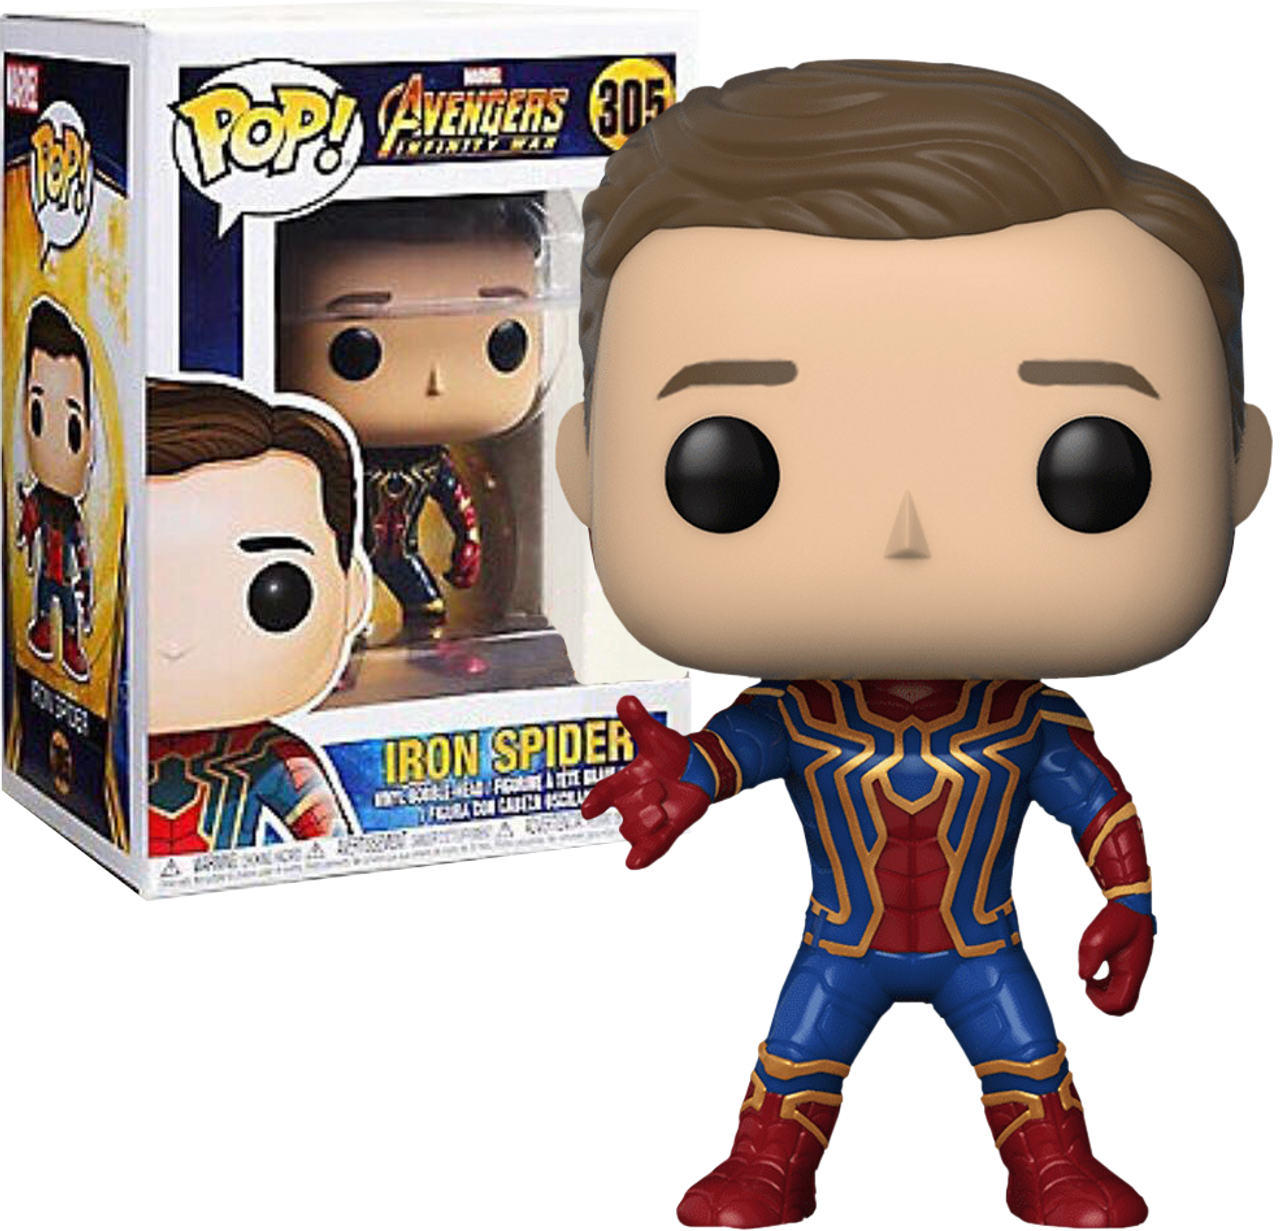 Avengers 3 Infinity War Iron Spider Unmasked Us